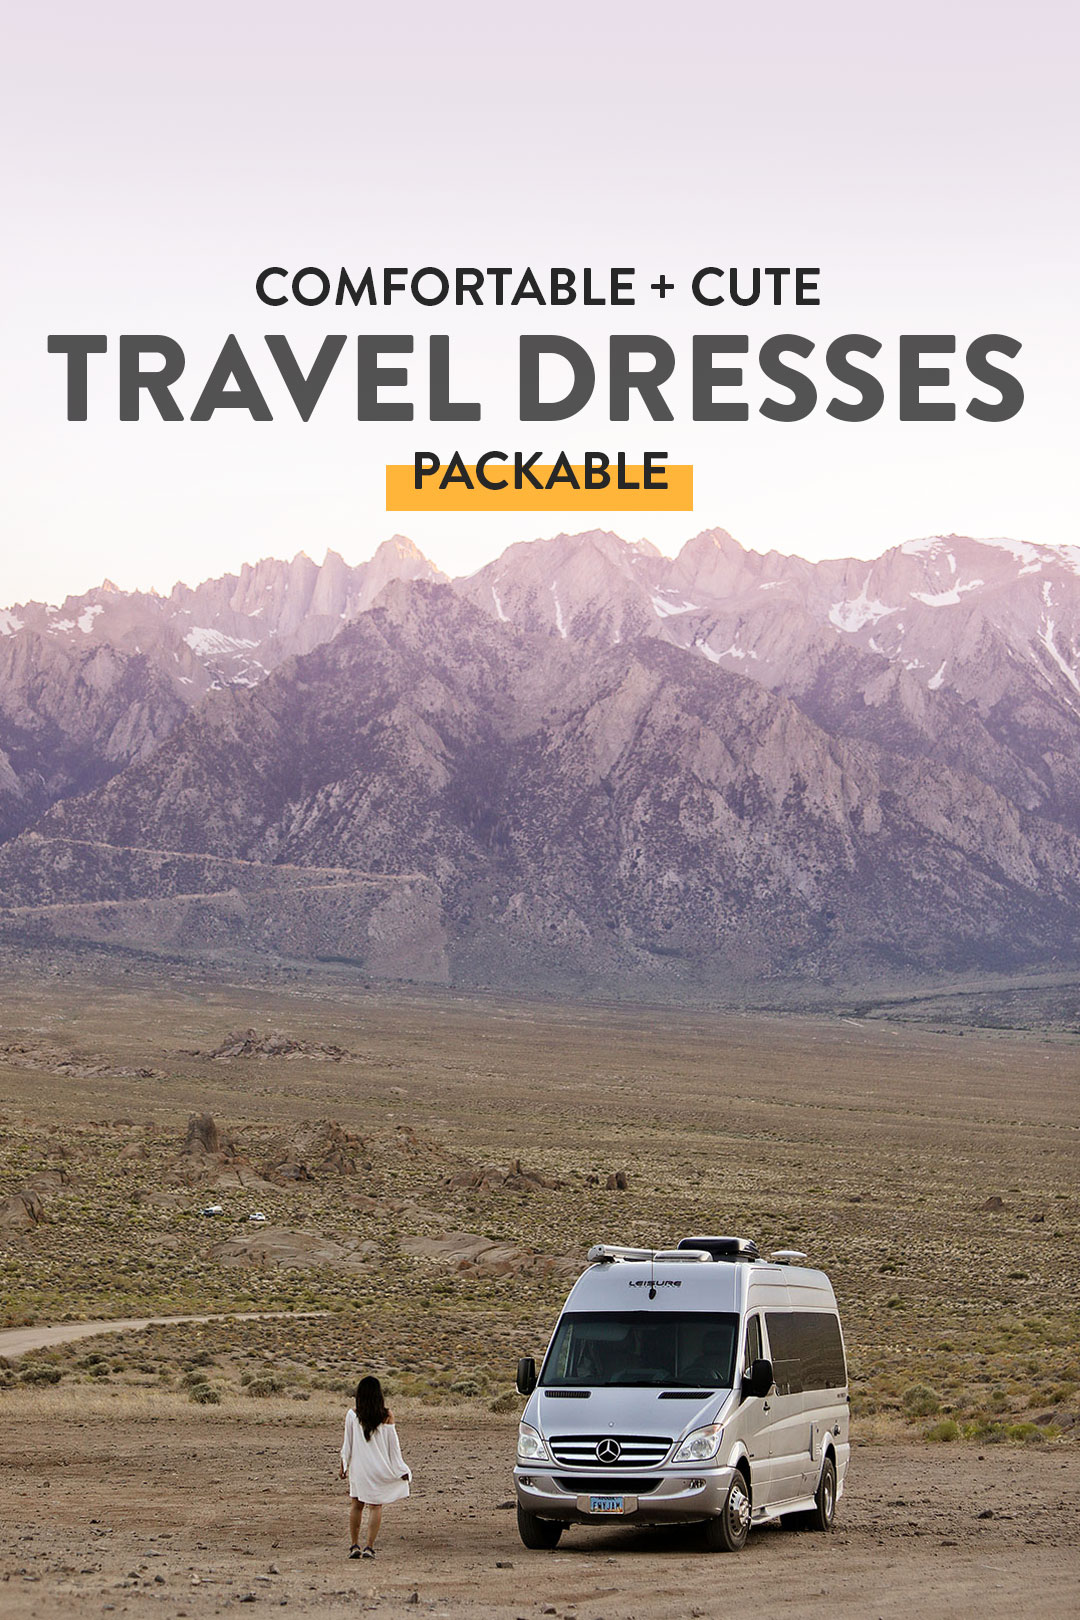 The Best Womens Travel Dresses - Comfortable, Cute, and Packable